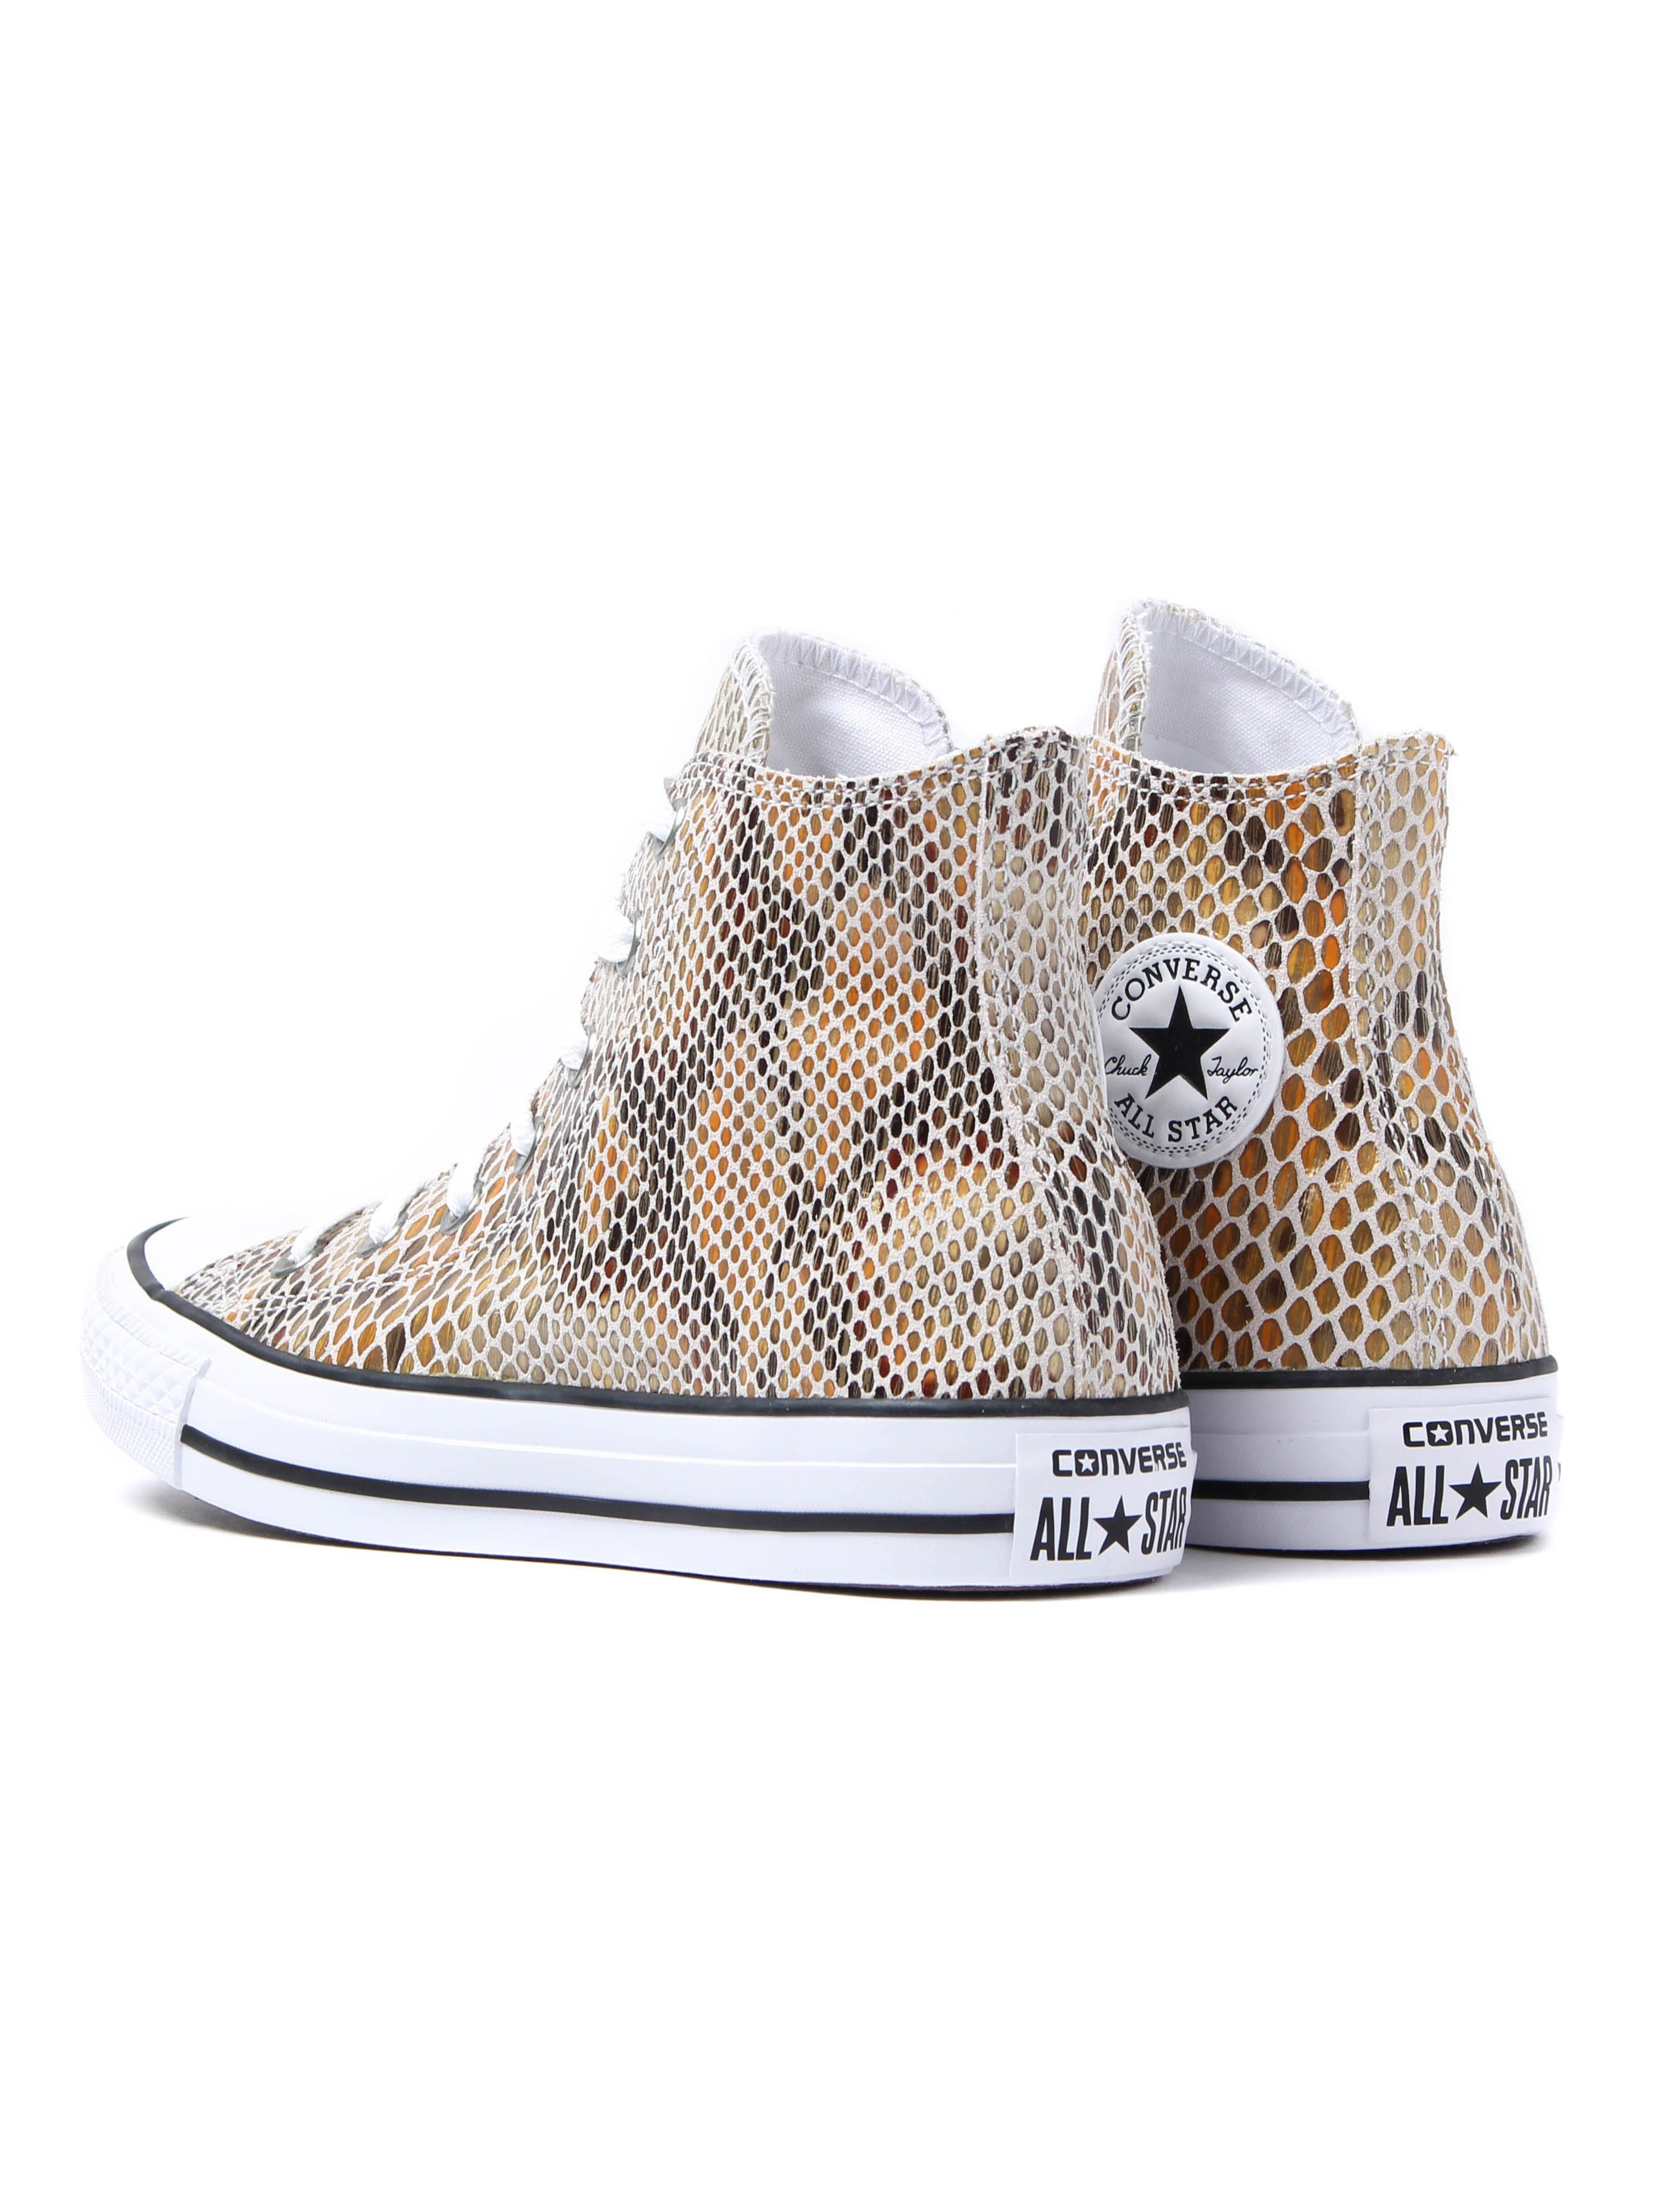 Converse Women's Chuck Taylor All Star HI Trainers – White Snake